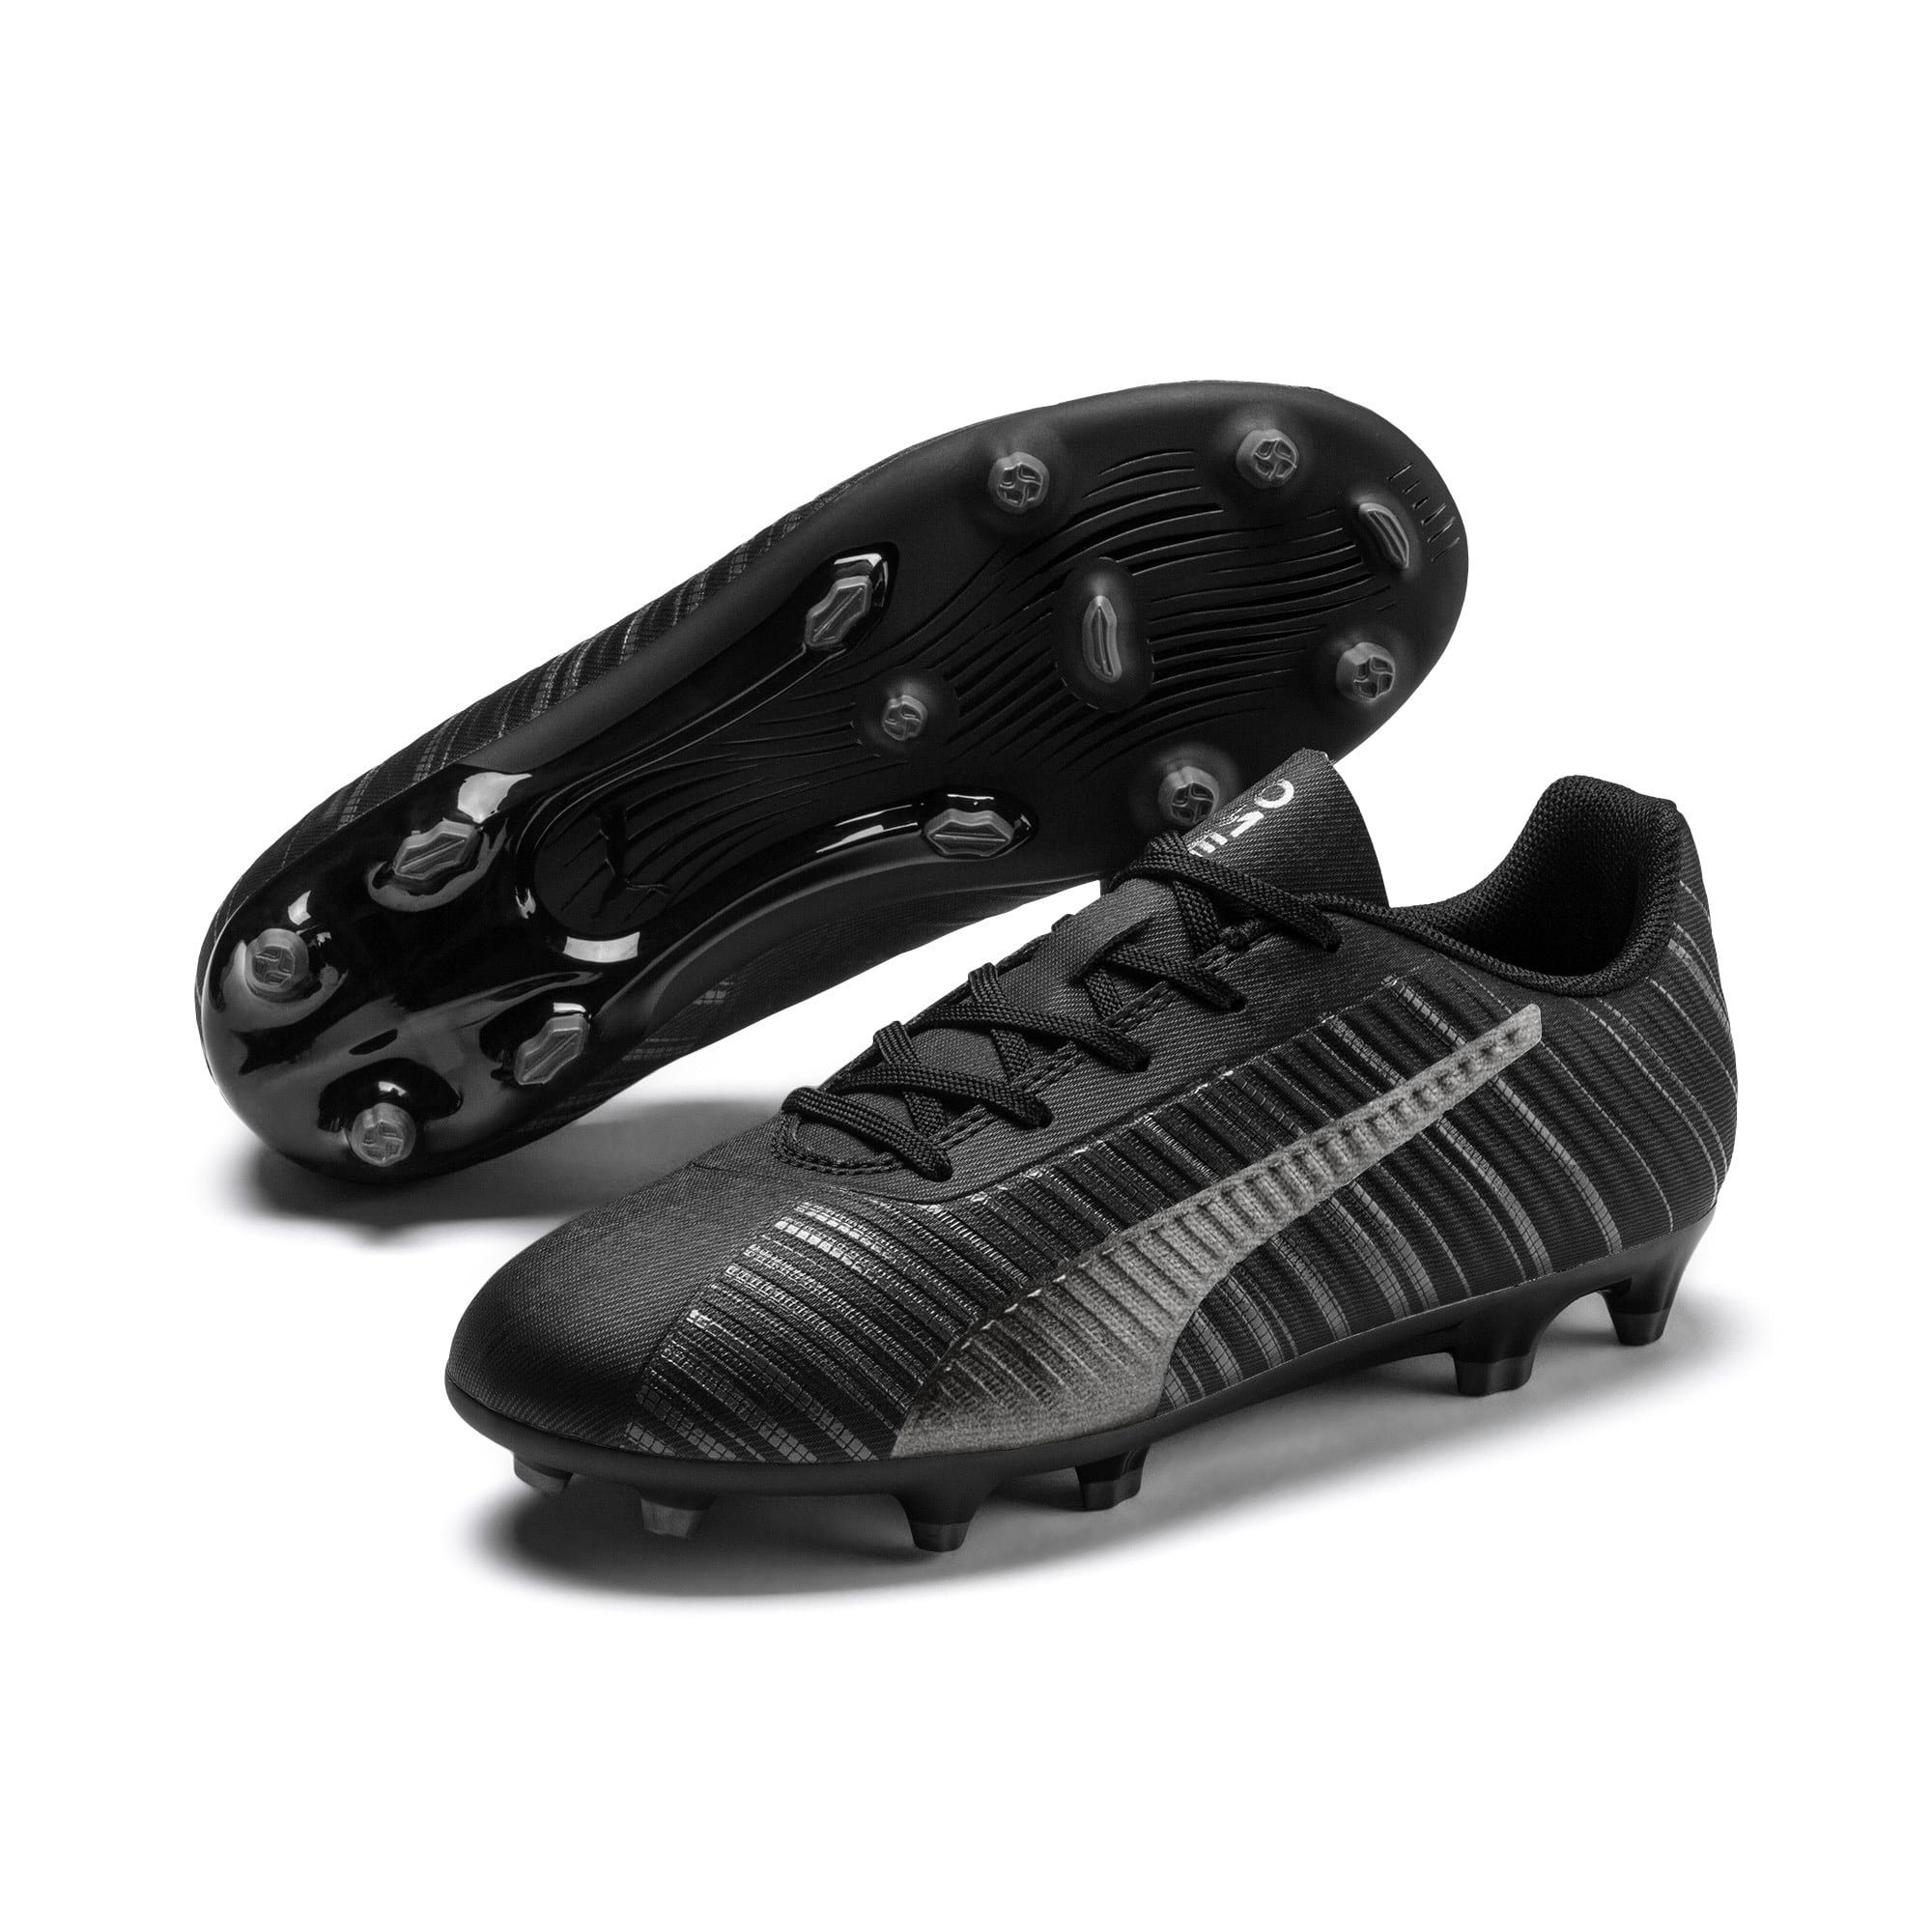 Thumbnail 2 of PUMA ONE 5.4 FG/AG Youth Fußballschuhe, Black-Black-Puma Aged Silver, medium